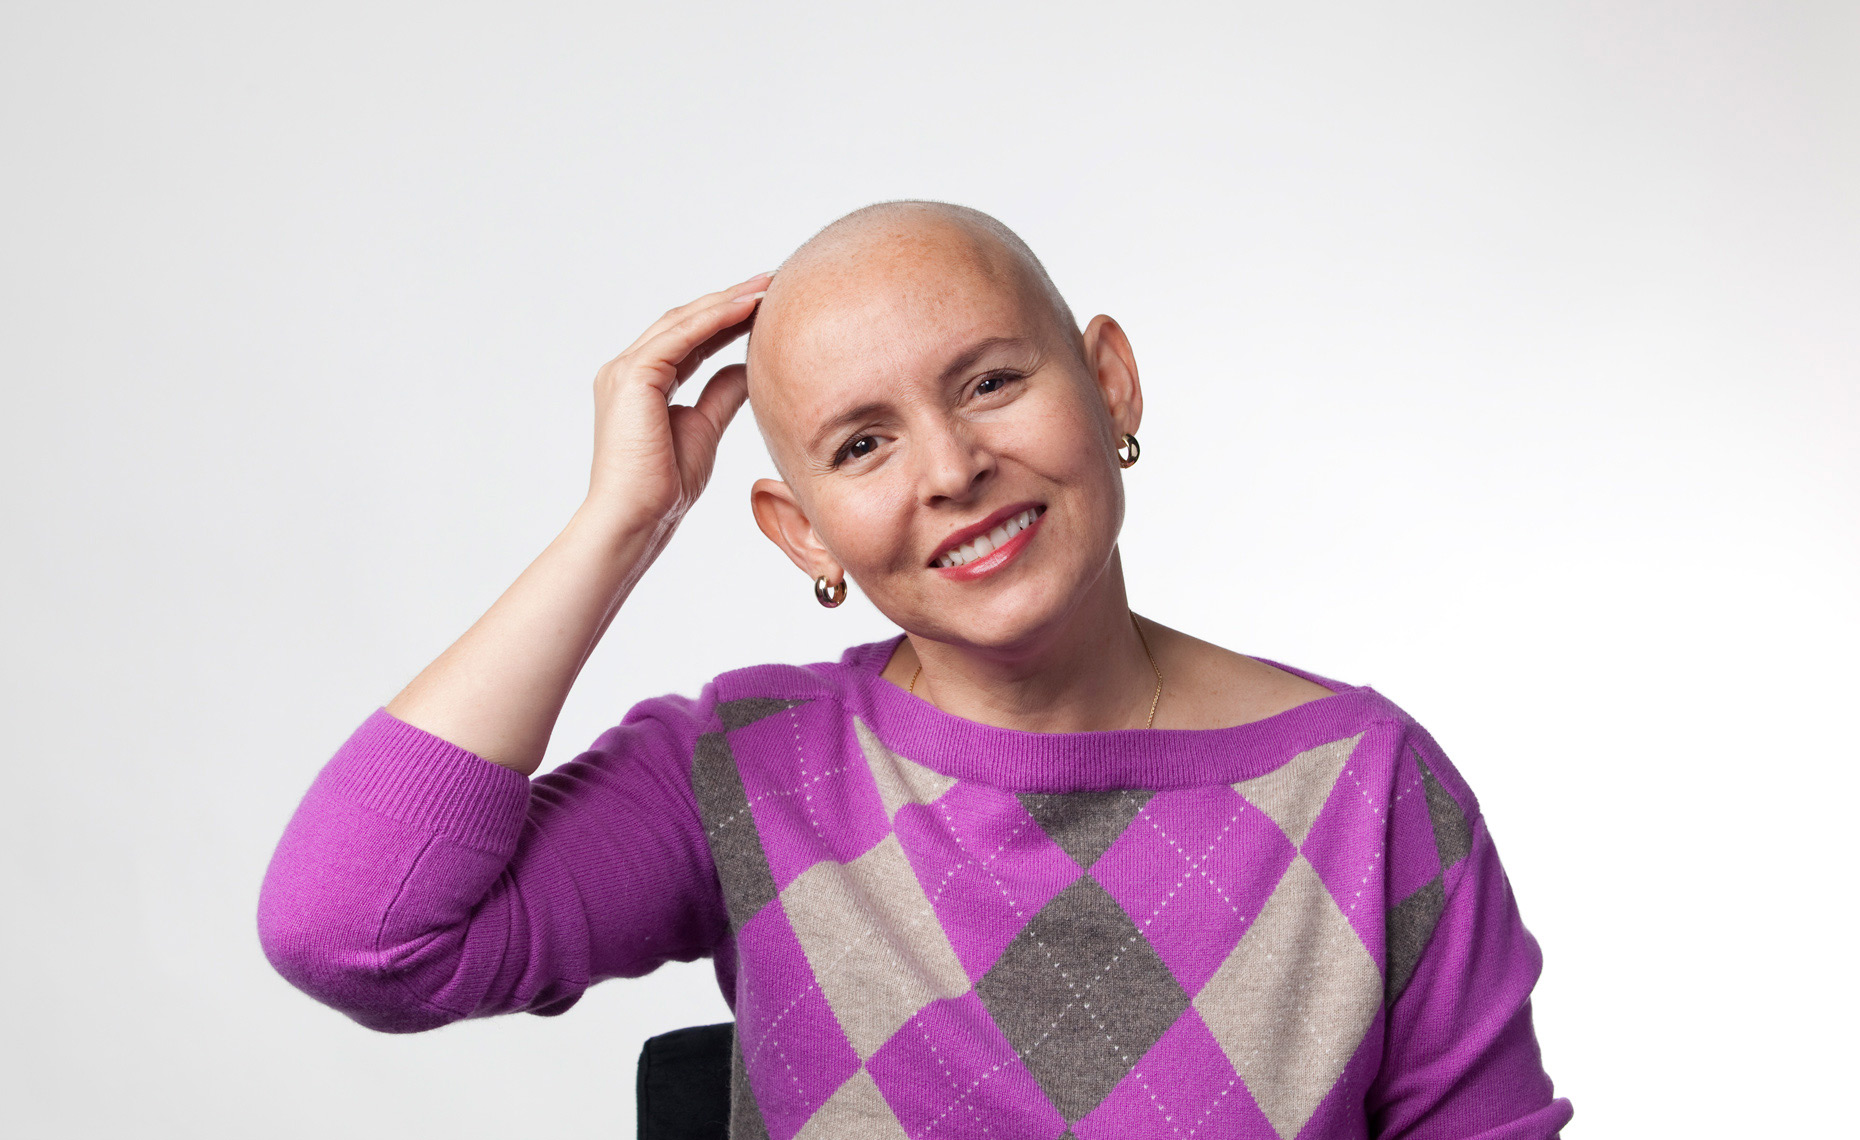 cancer-survivor-0464.jpg